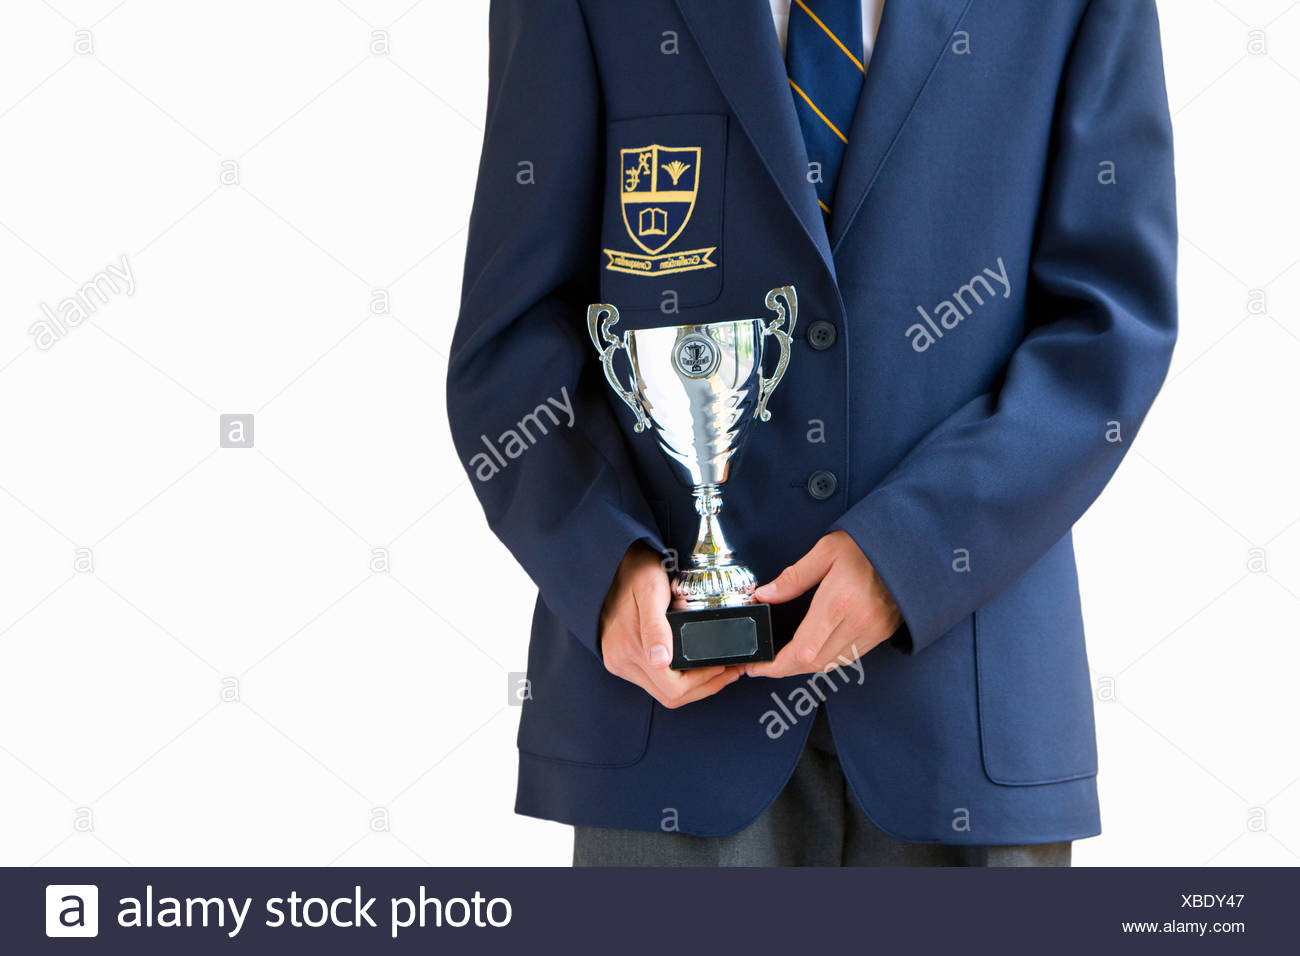 Cut Out Of Male School Pupil Holding Trophy - Stock Image